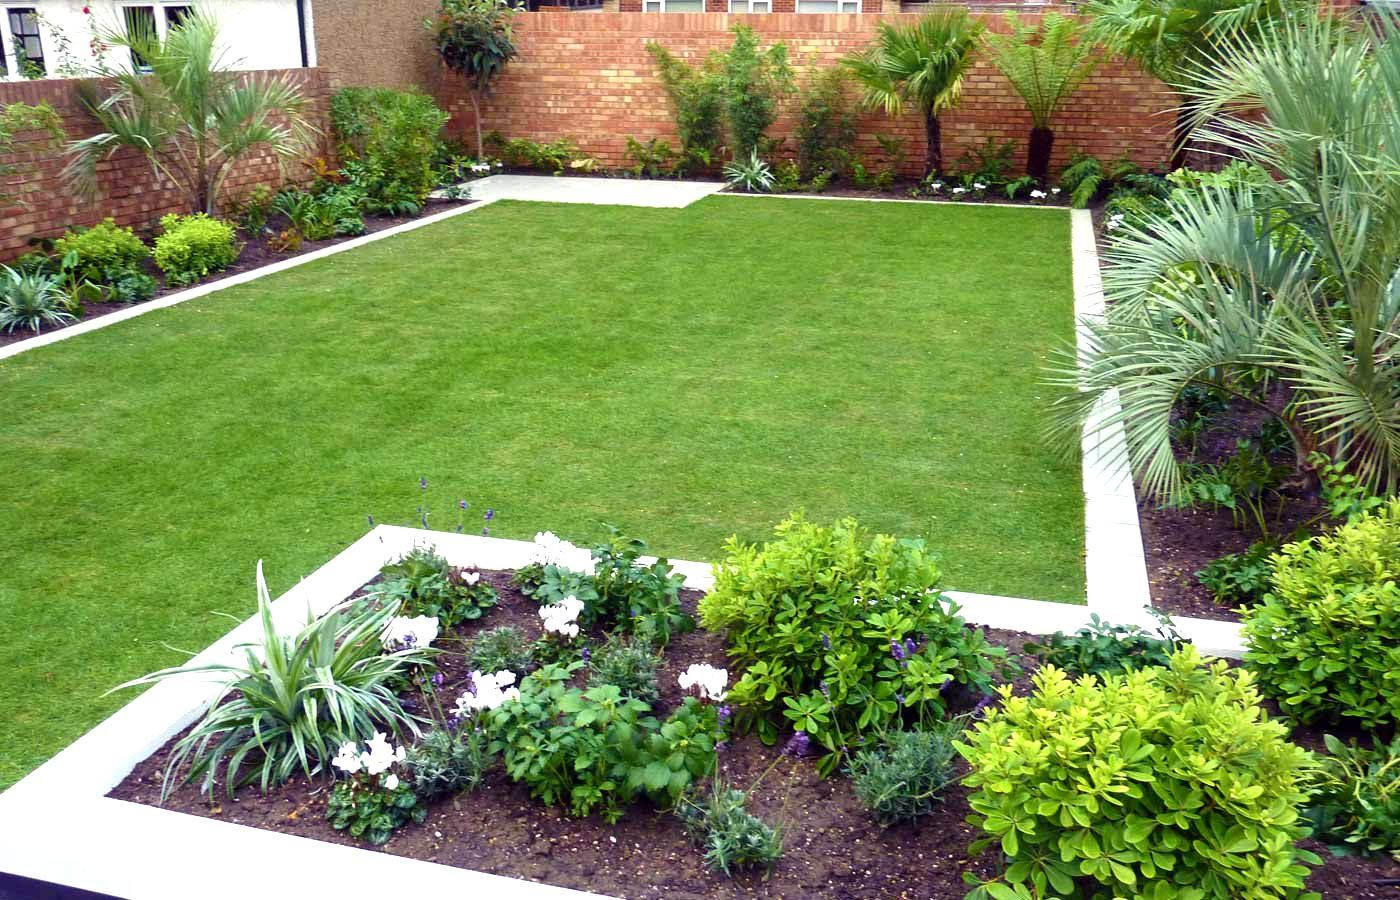 Simple garden designs no fret small garden design Modern front garden ideas uk